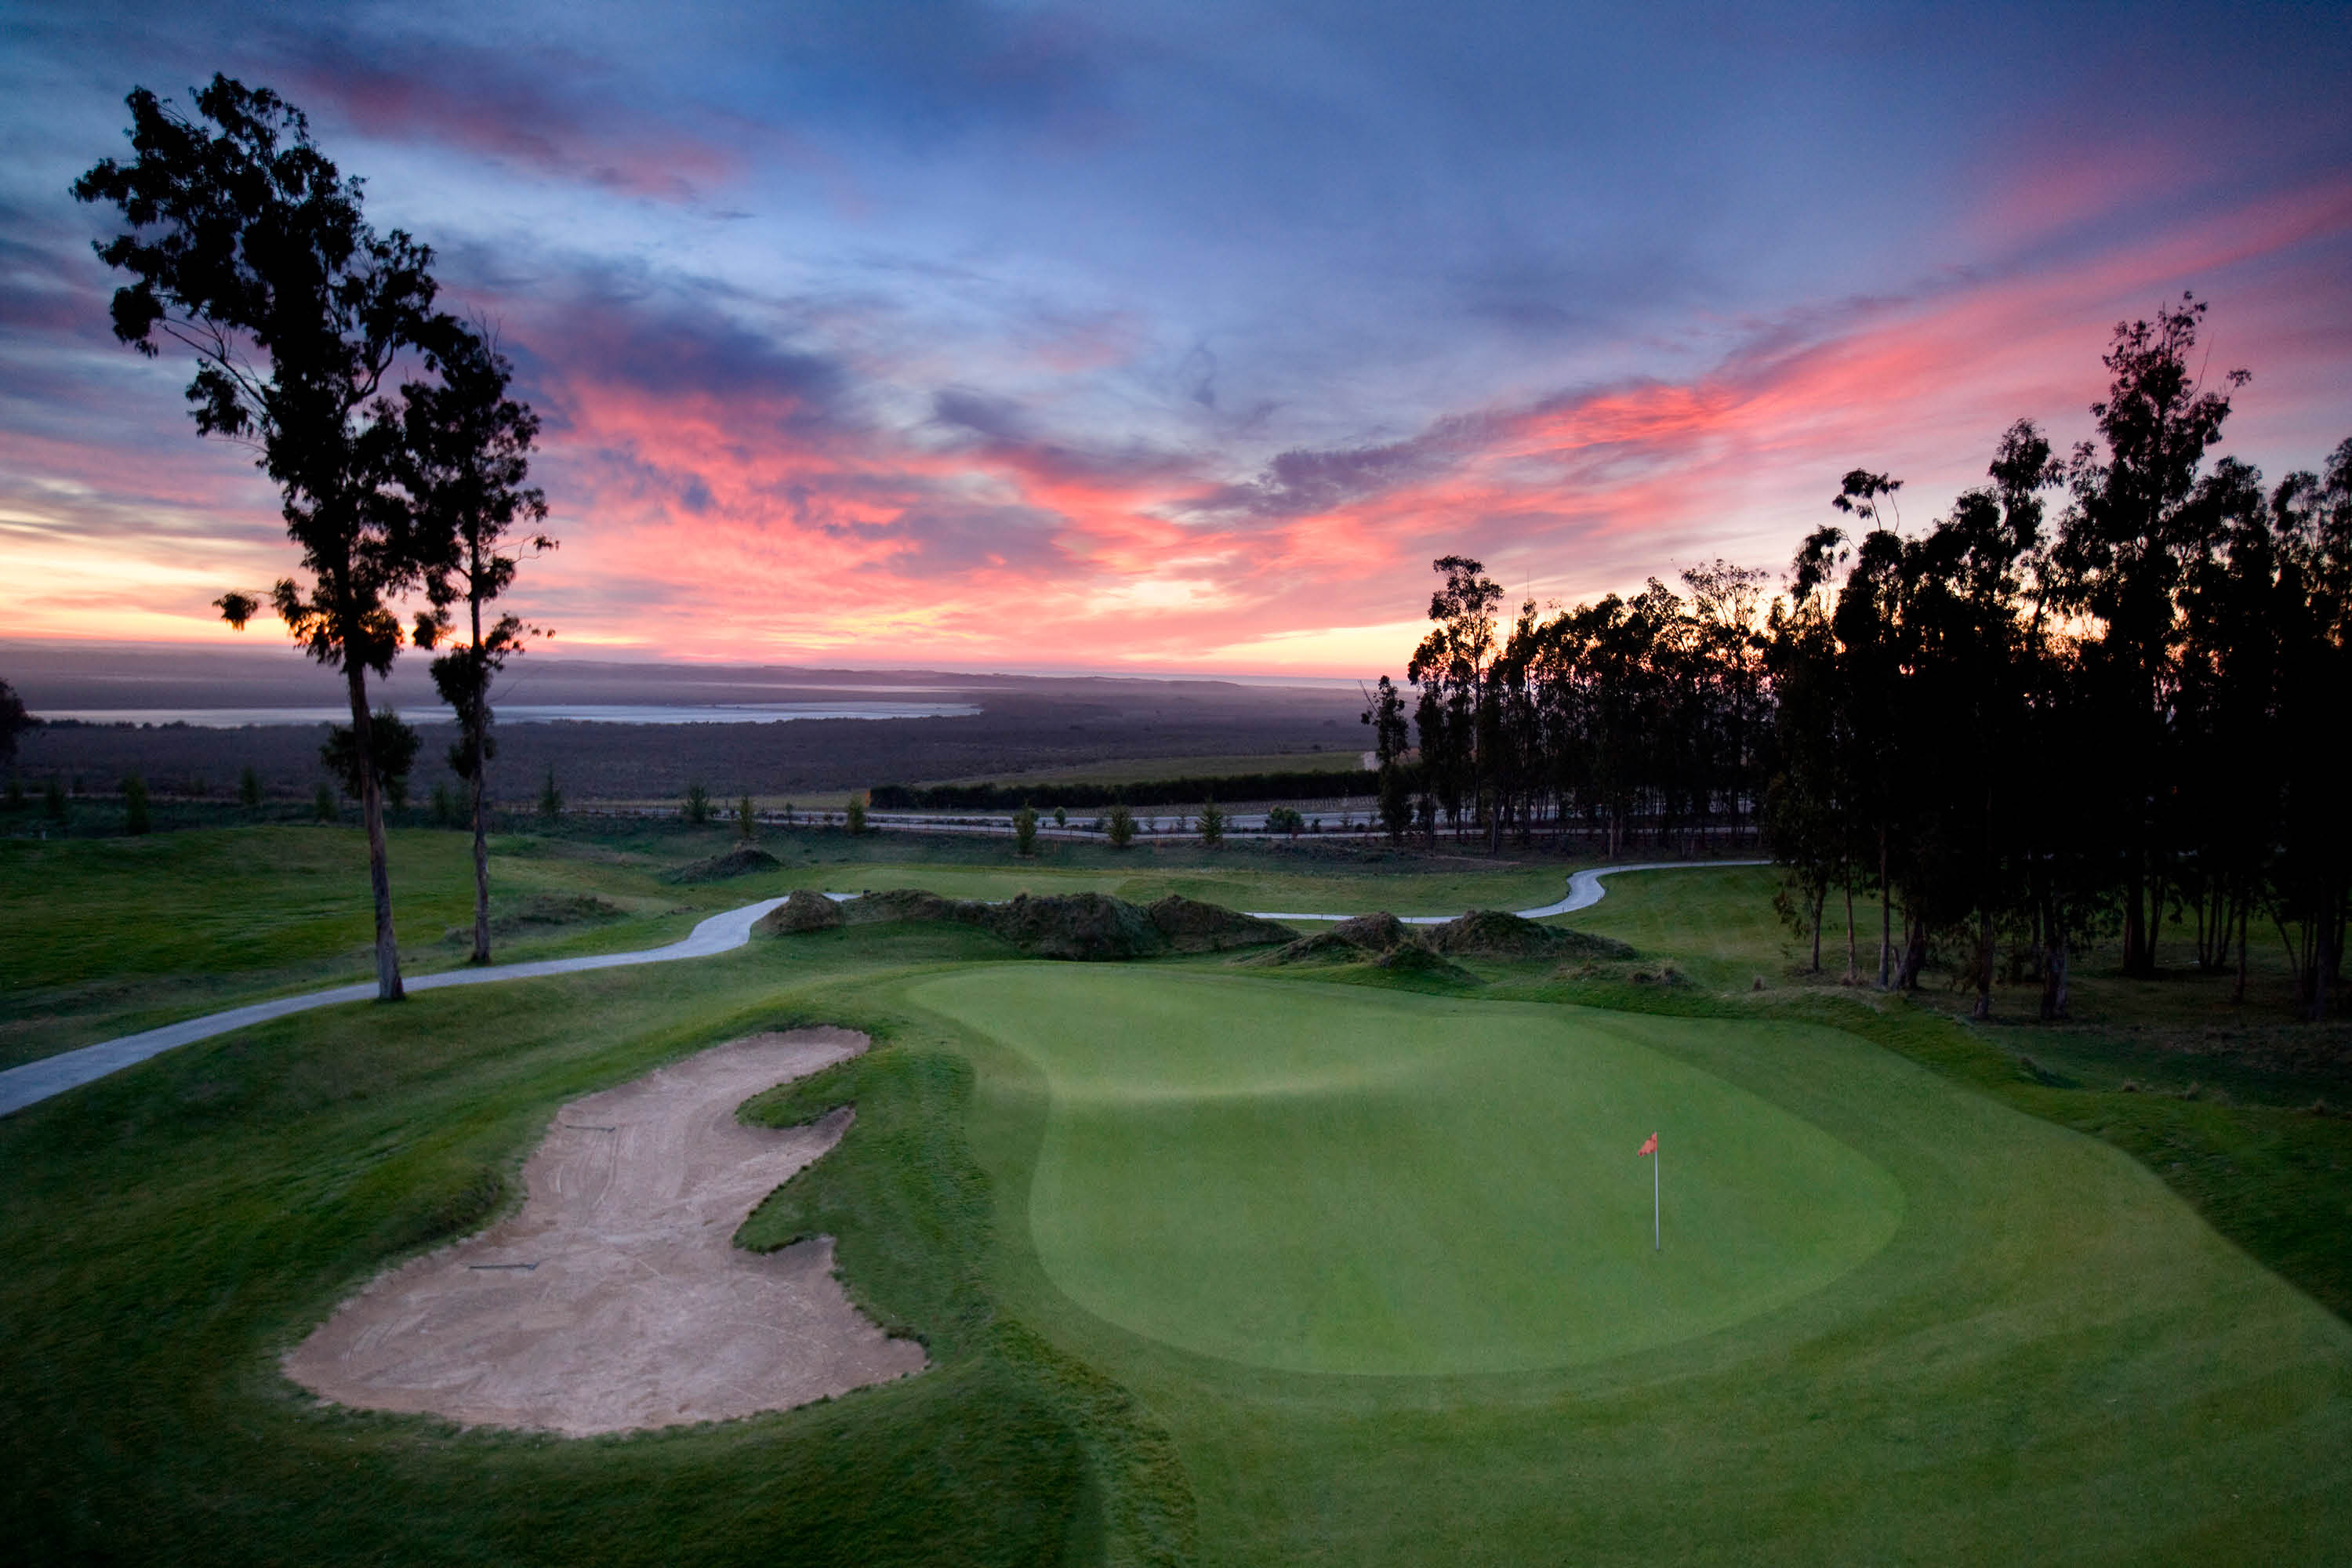 Visit Monarch Dunes for the best golf in Central Coast Cali.